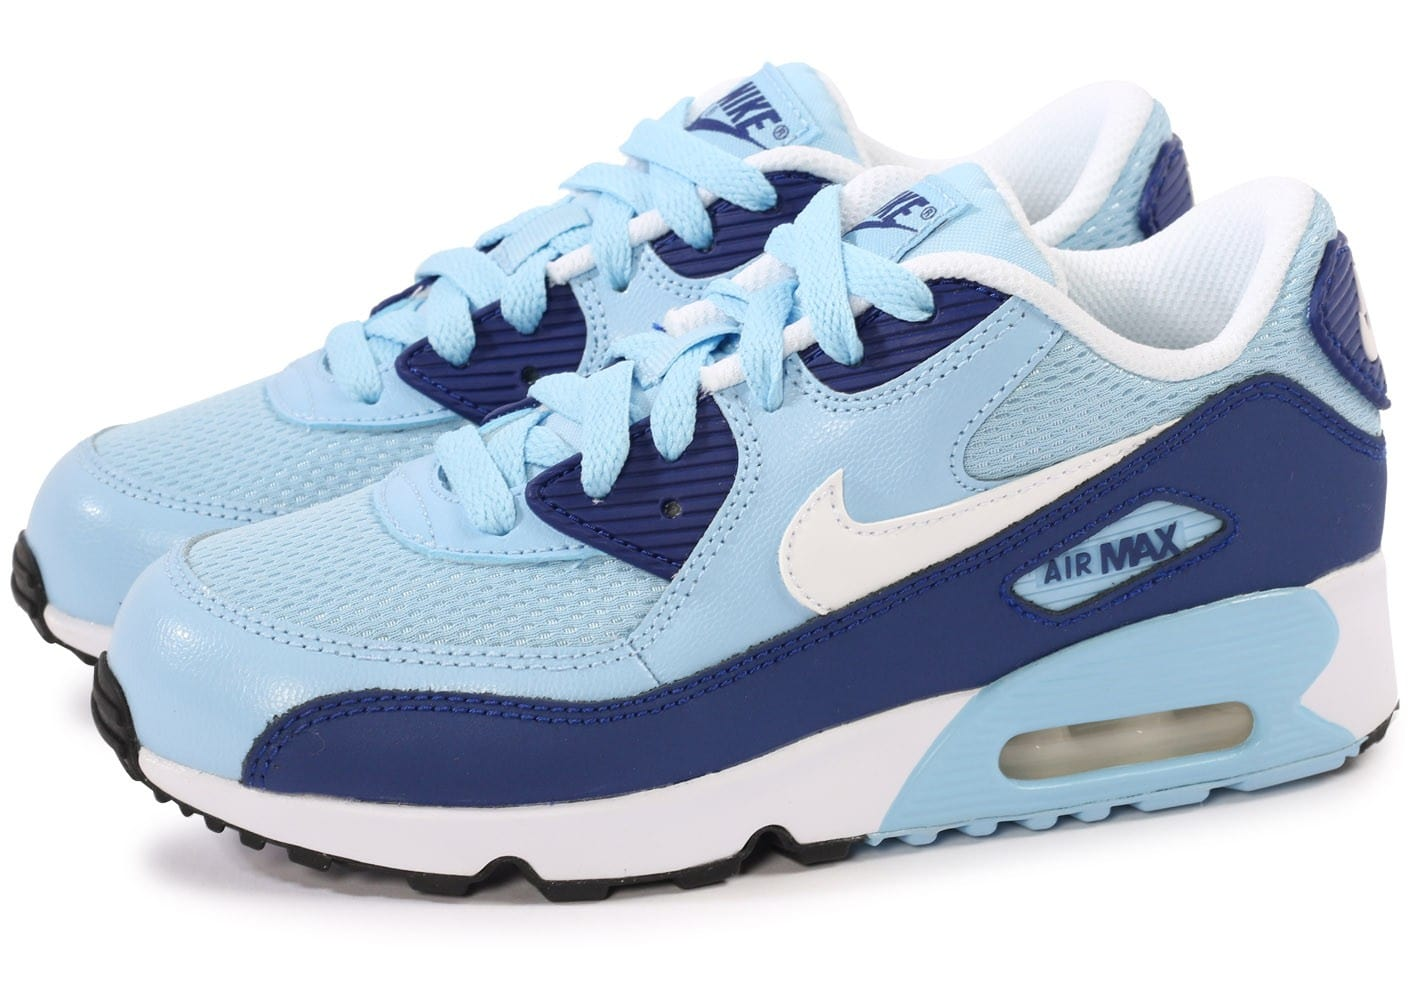 nike air max 90 mesh bleu et blanc enfant chaussures chaussures chausport. Black Bedroom Furniture Sets. Home Design Ideas